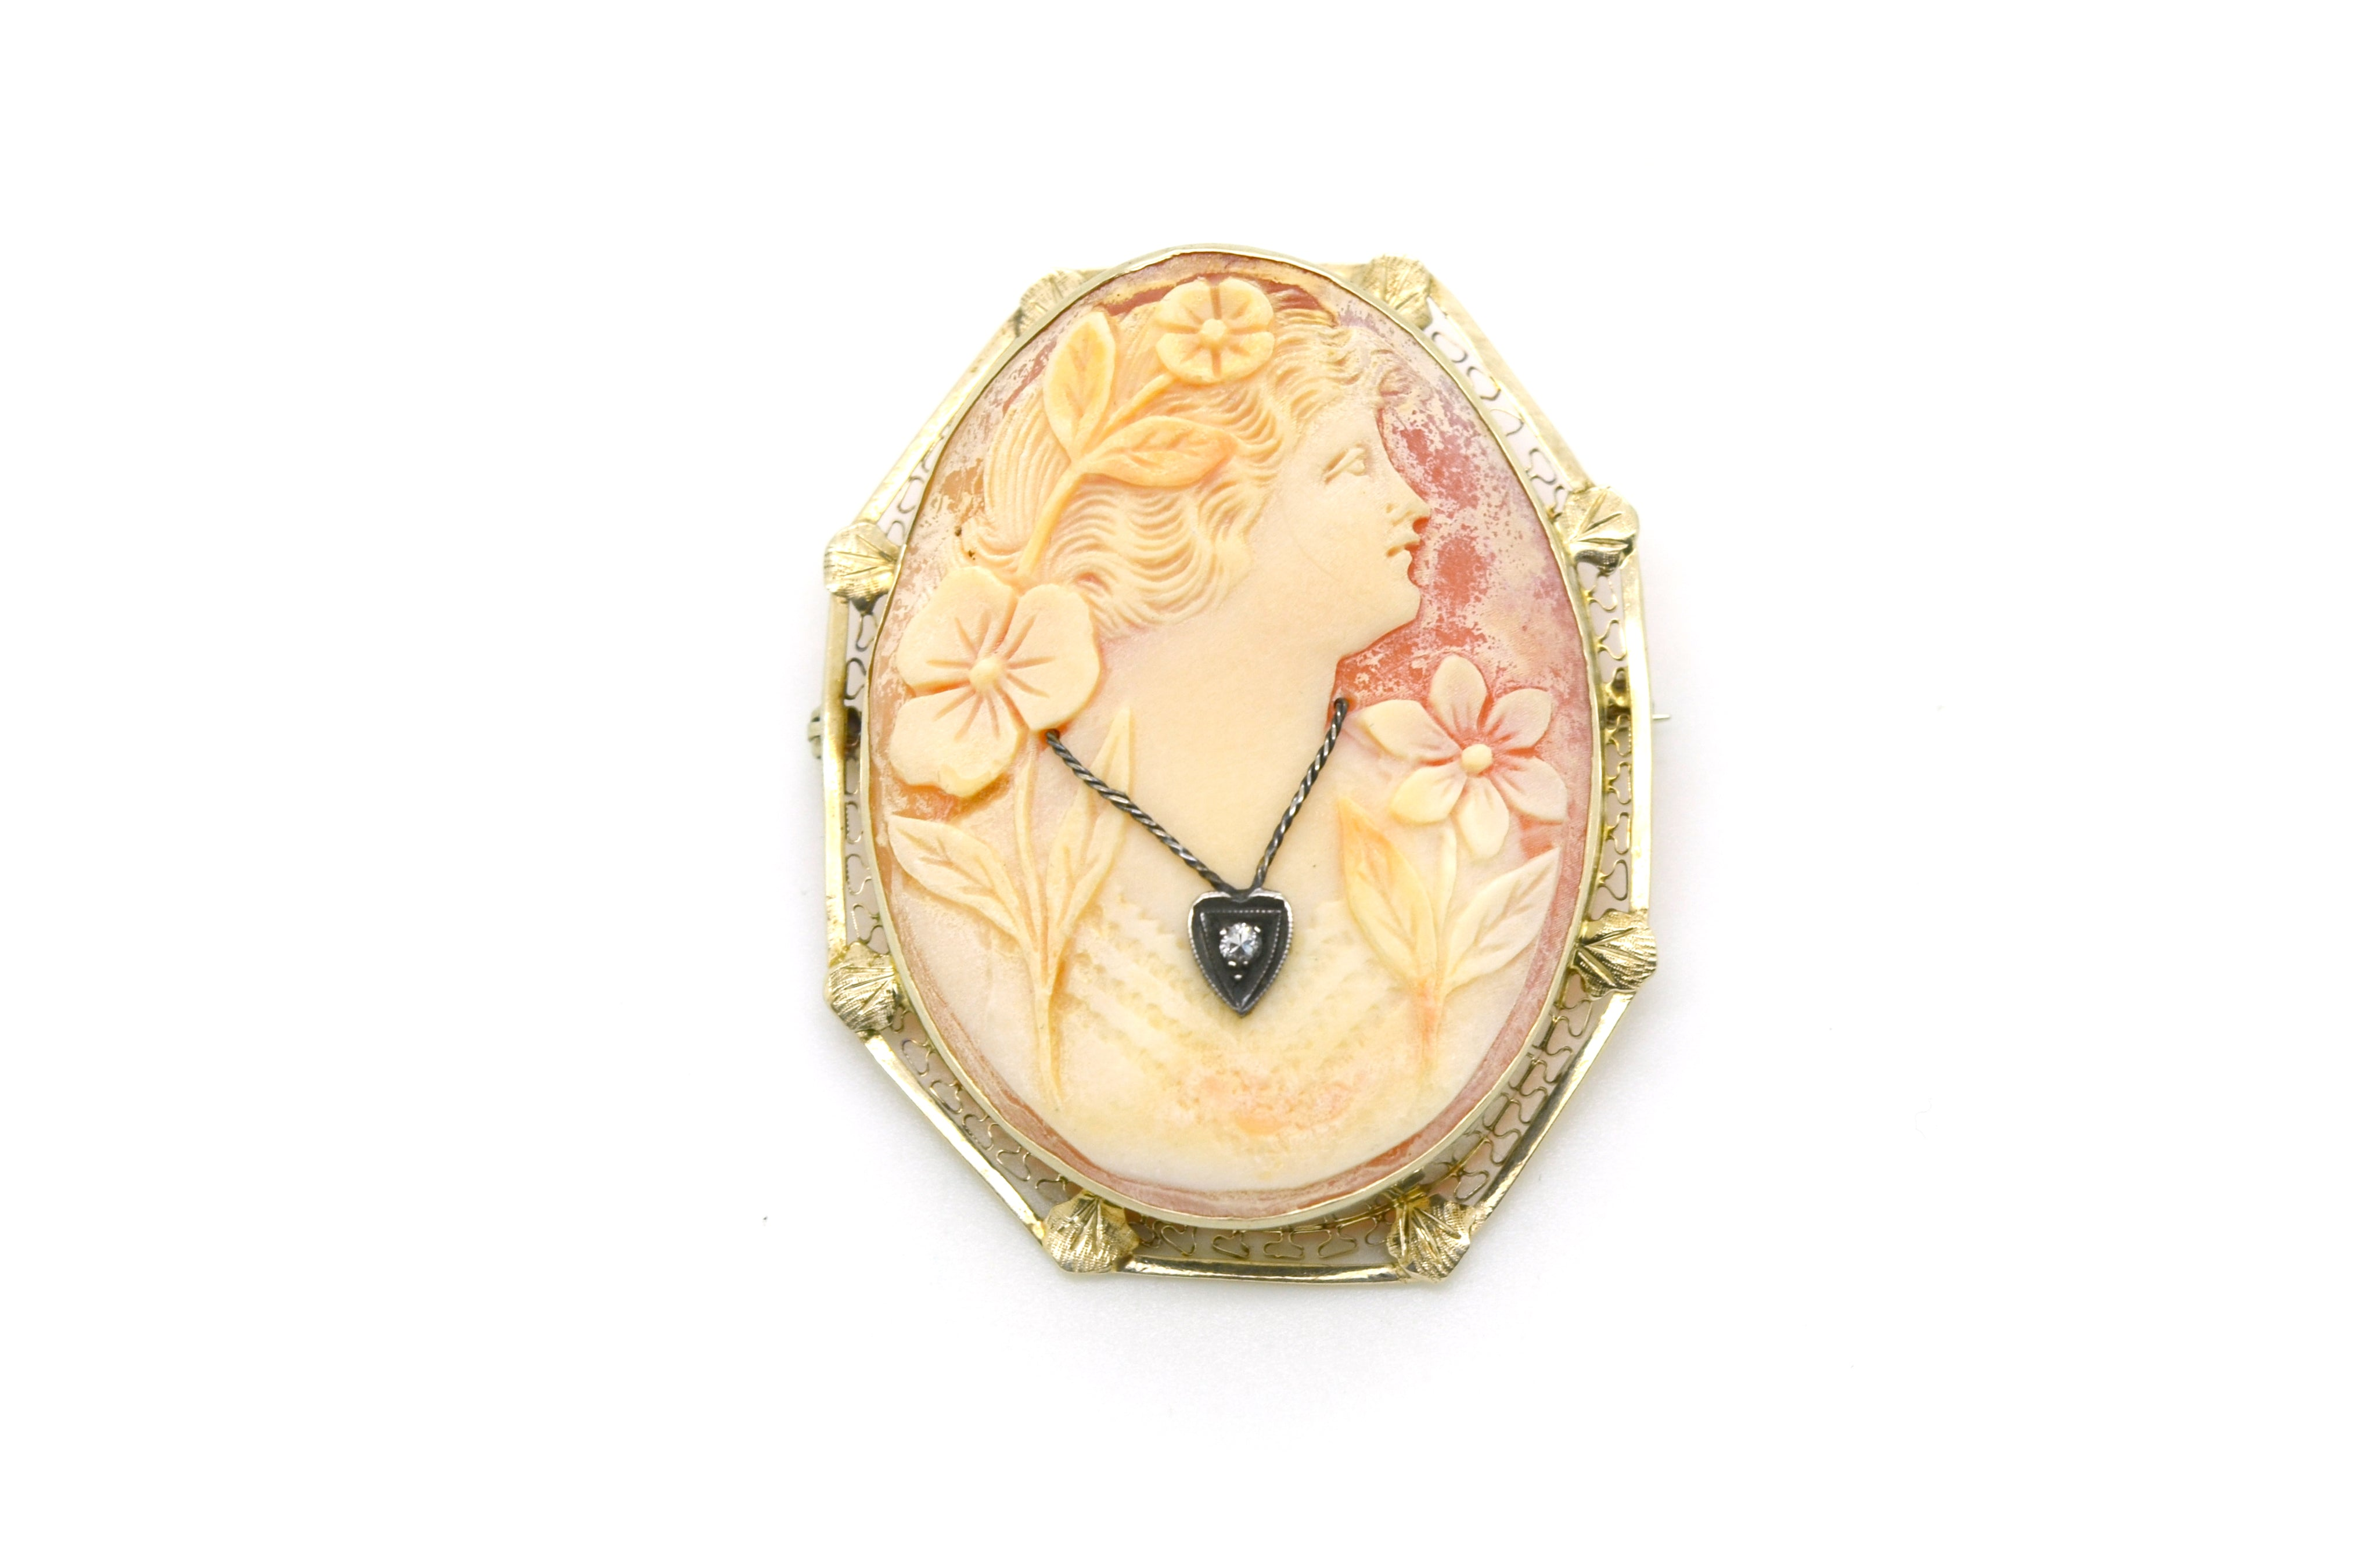 Vintage 14k White Gold Woman Cameo Diamond Pendant Brooch in Frame - 49 by 39 mm